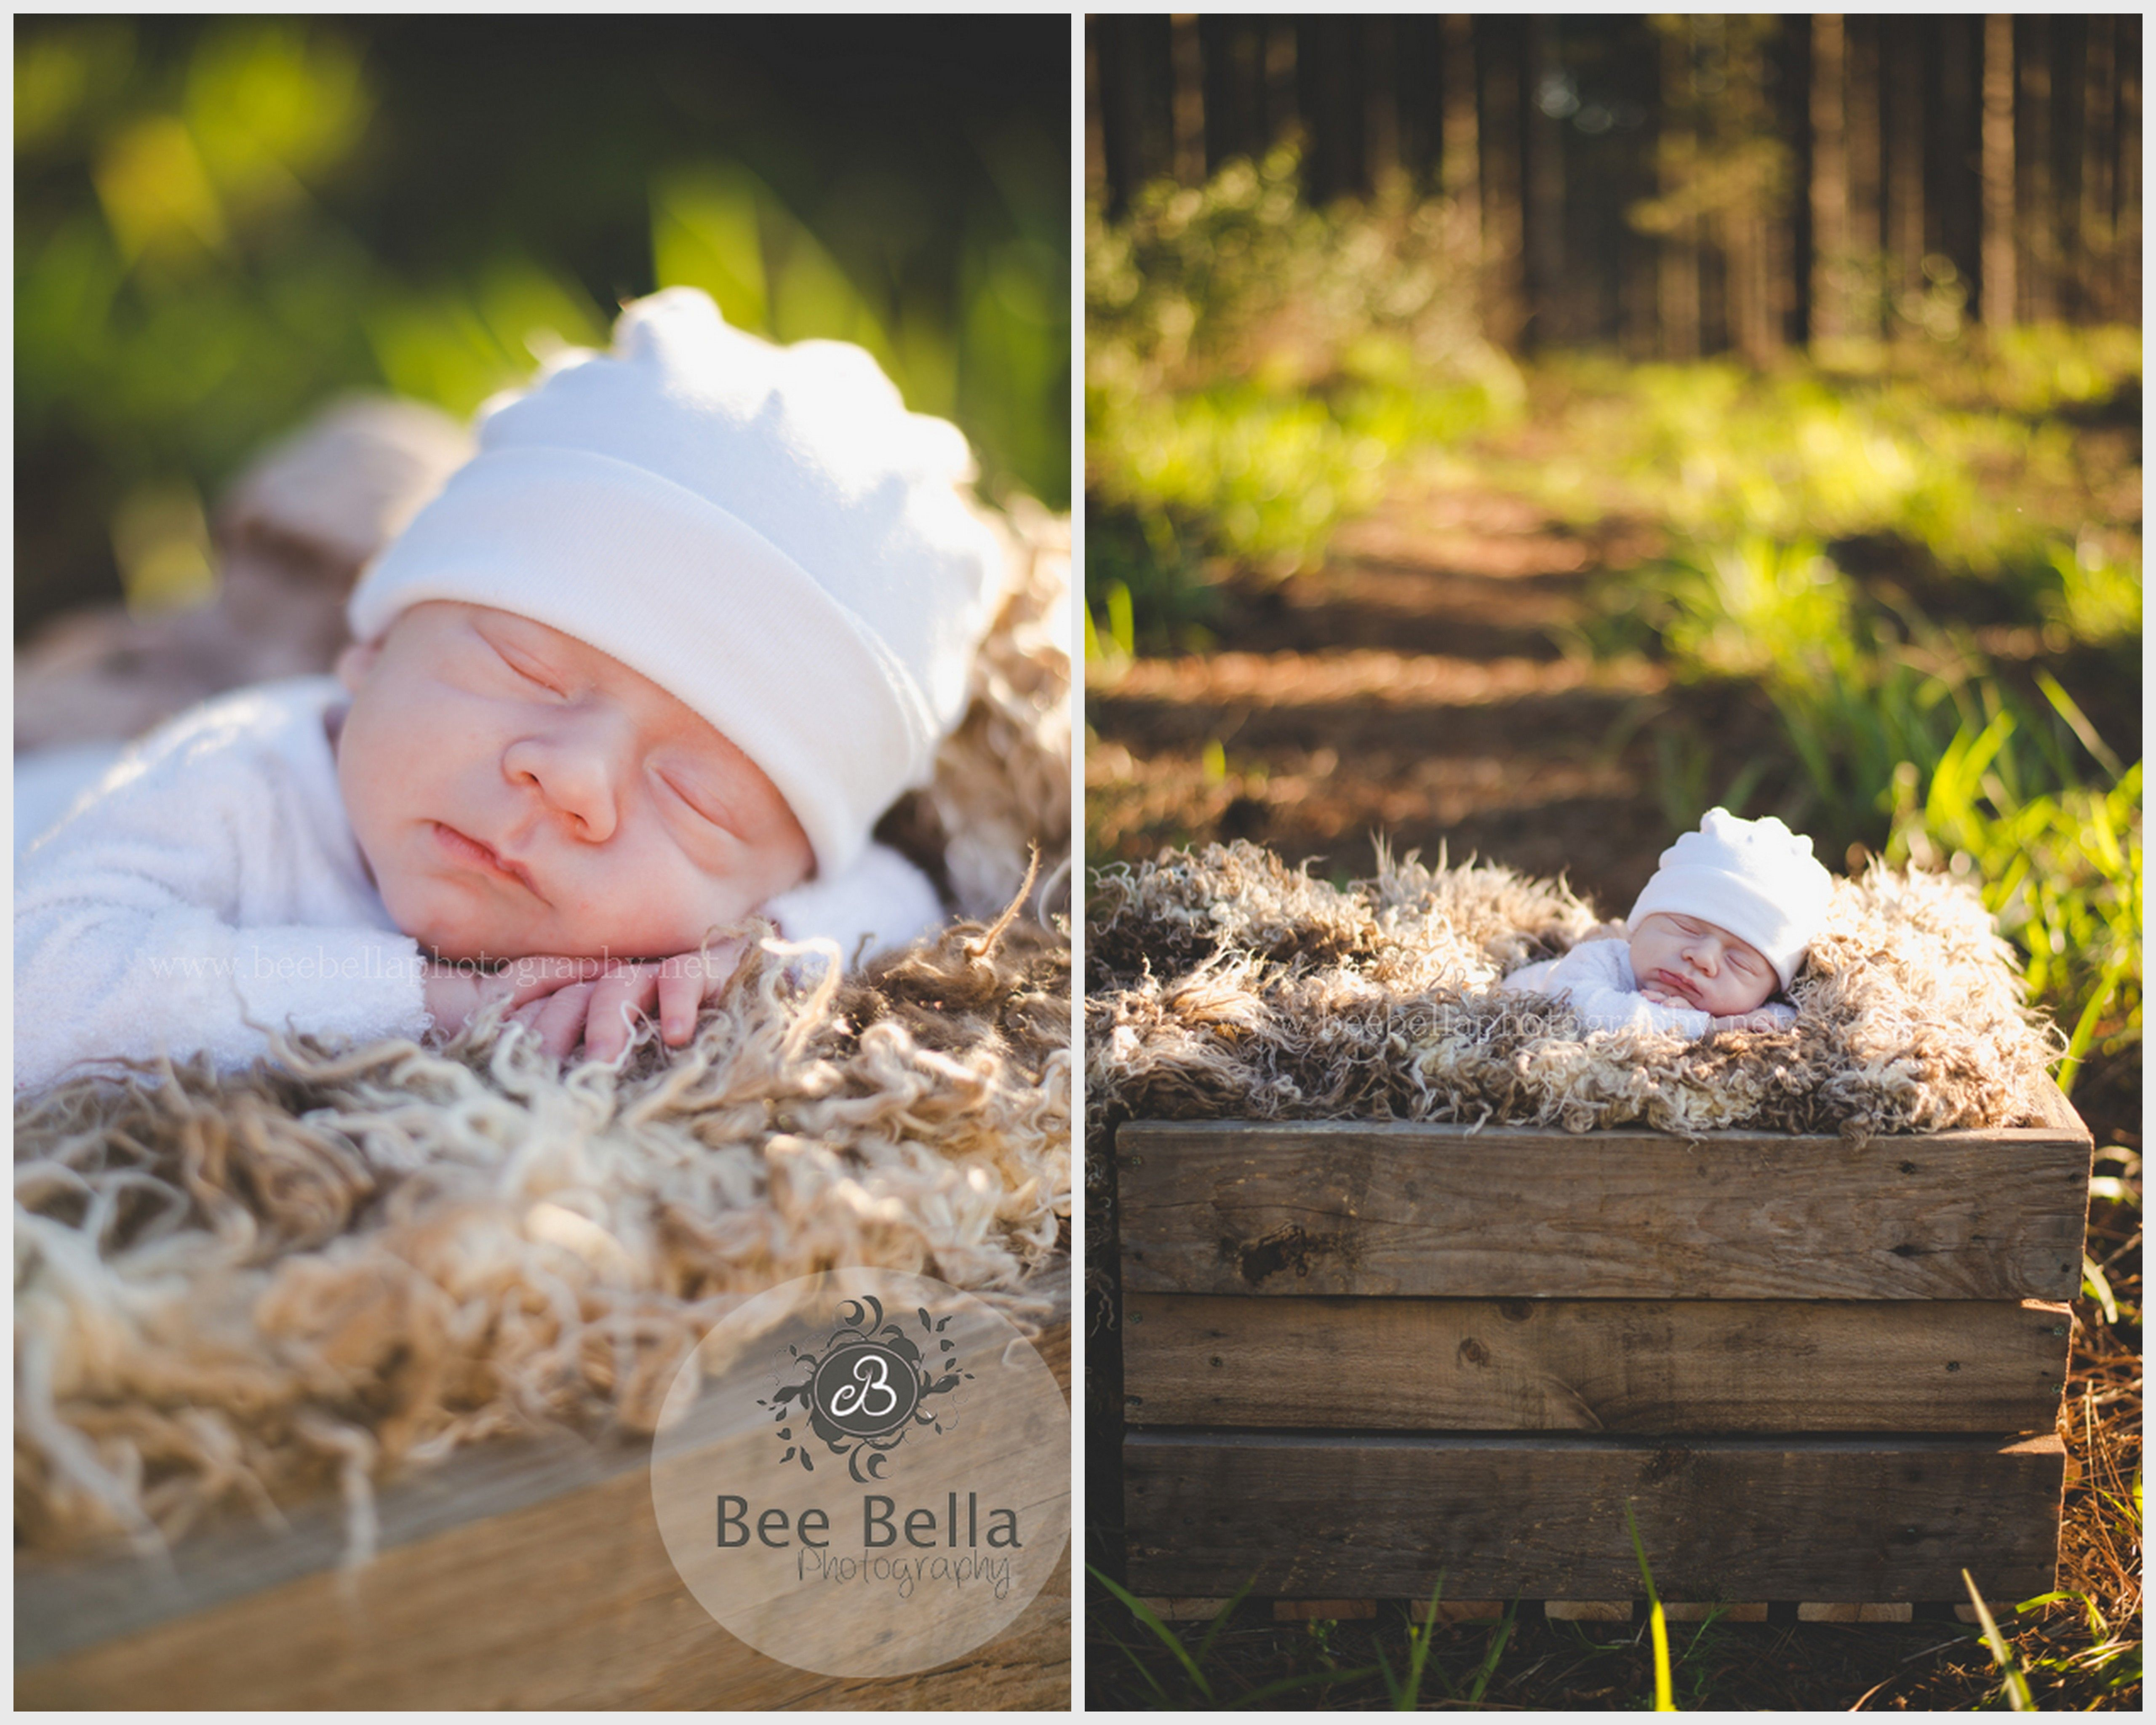 6 month outdoor session ideas for a boy   Photography